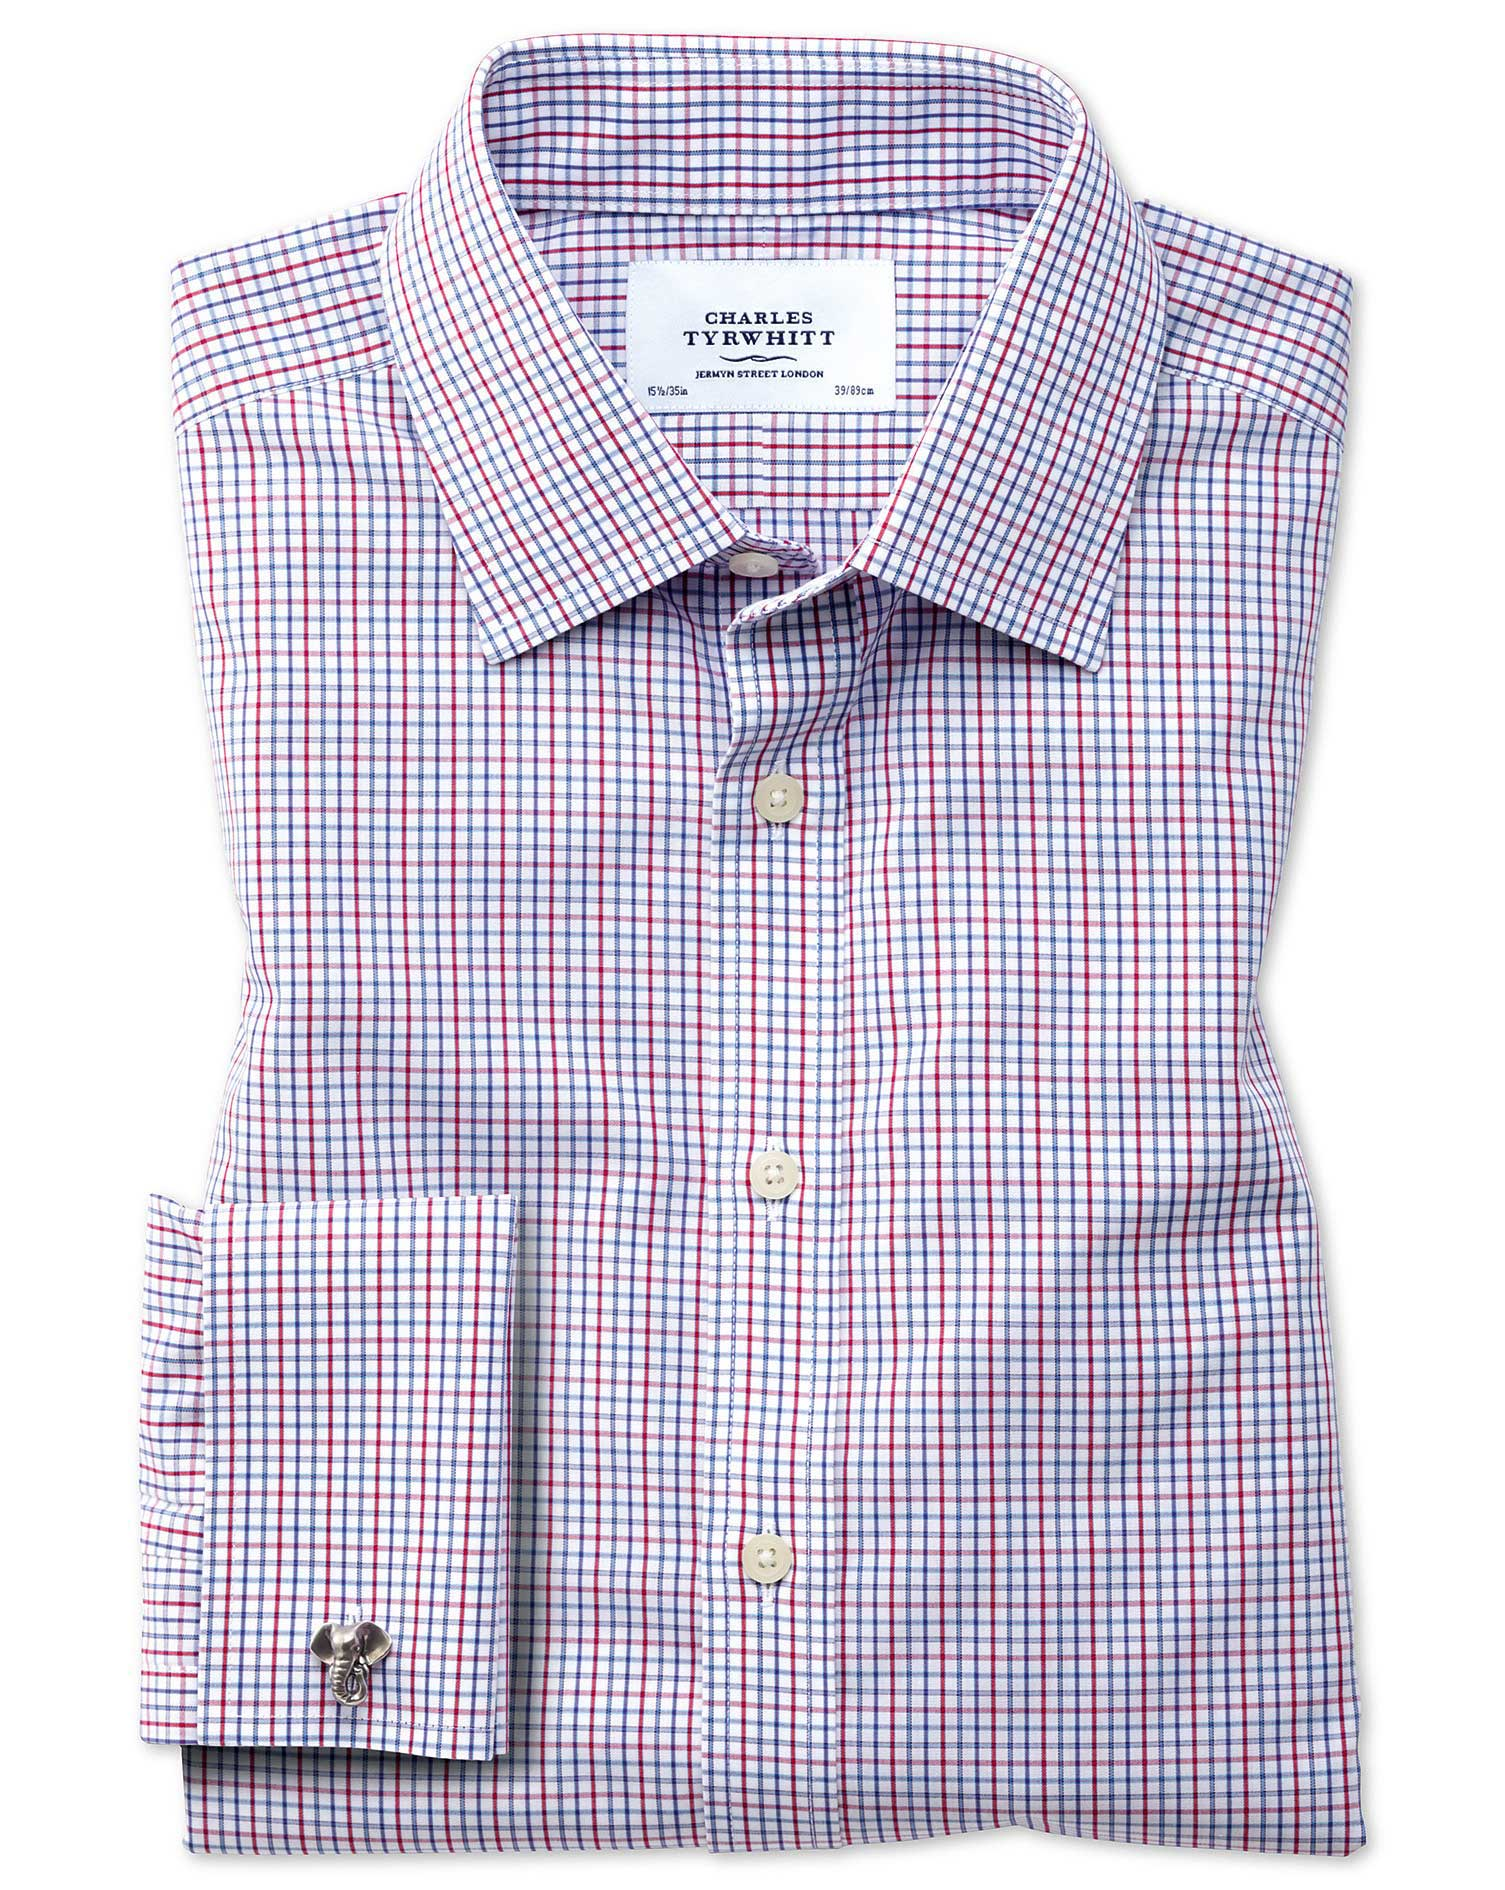 Extra Slim Fit Non-Iron Grid Check Multi Cotton Formal Shirt Single Cuff Size 16.5/34 by Charles Tyr